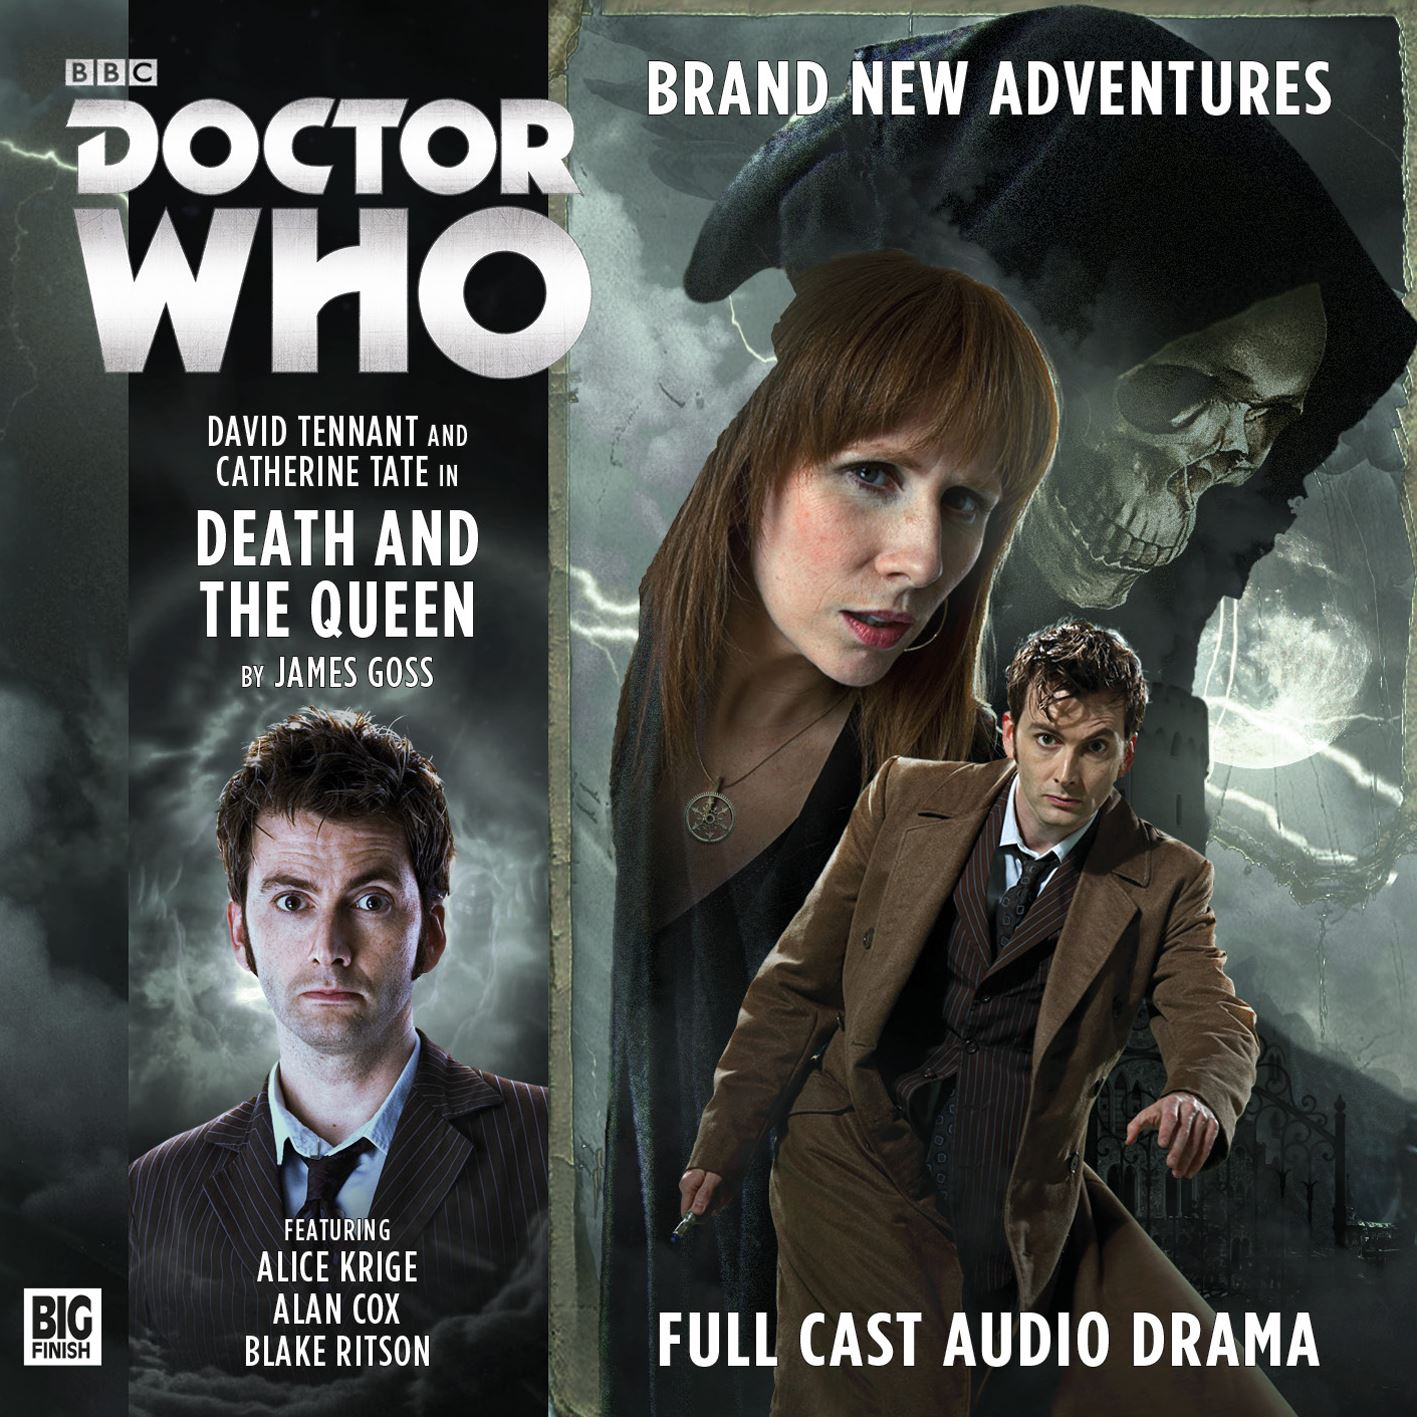 David-Tennant-Catherine-Tate-Death-and-the-Queen-Doctor-Who-Brasil